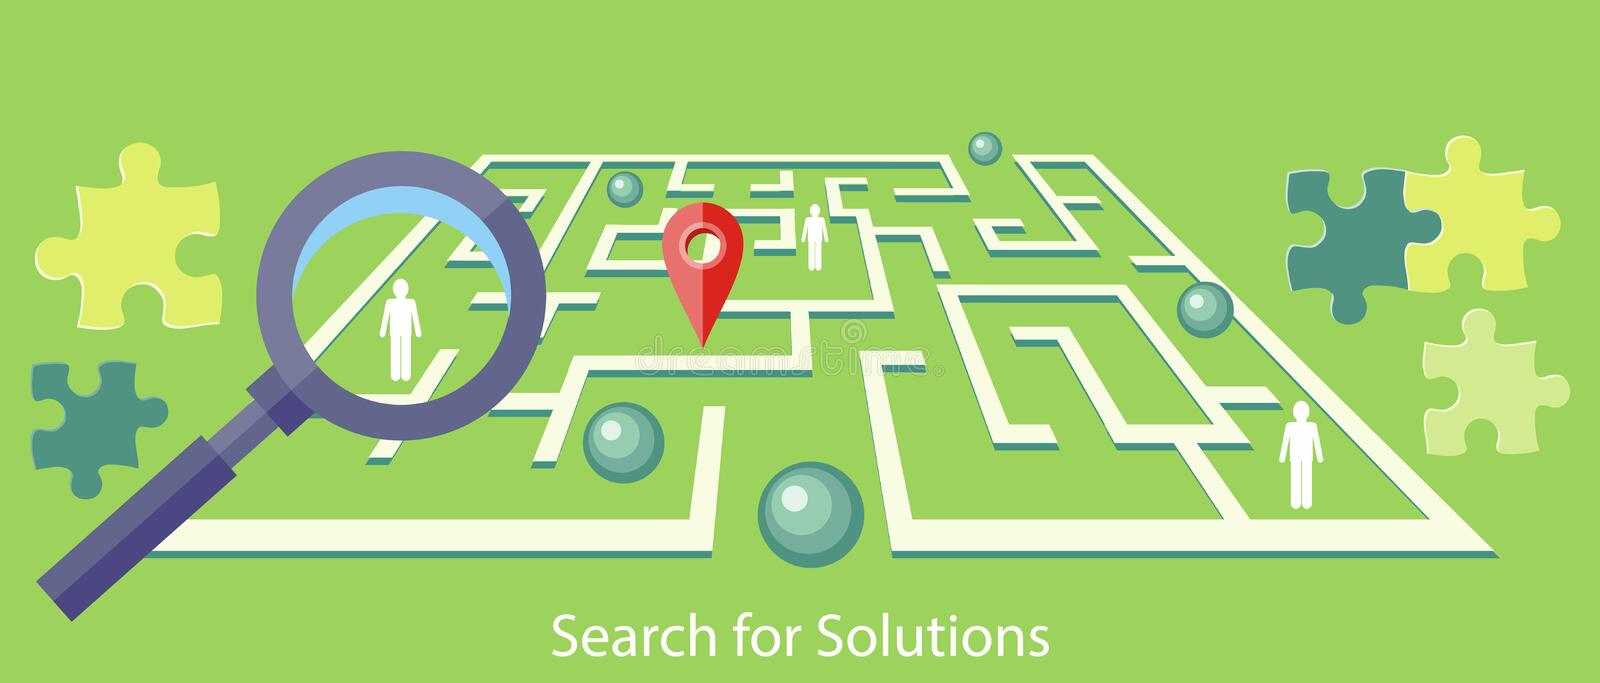 Search for Solution Maze royalty free illustration